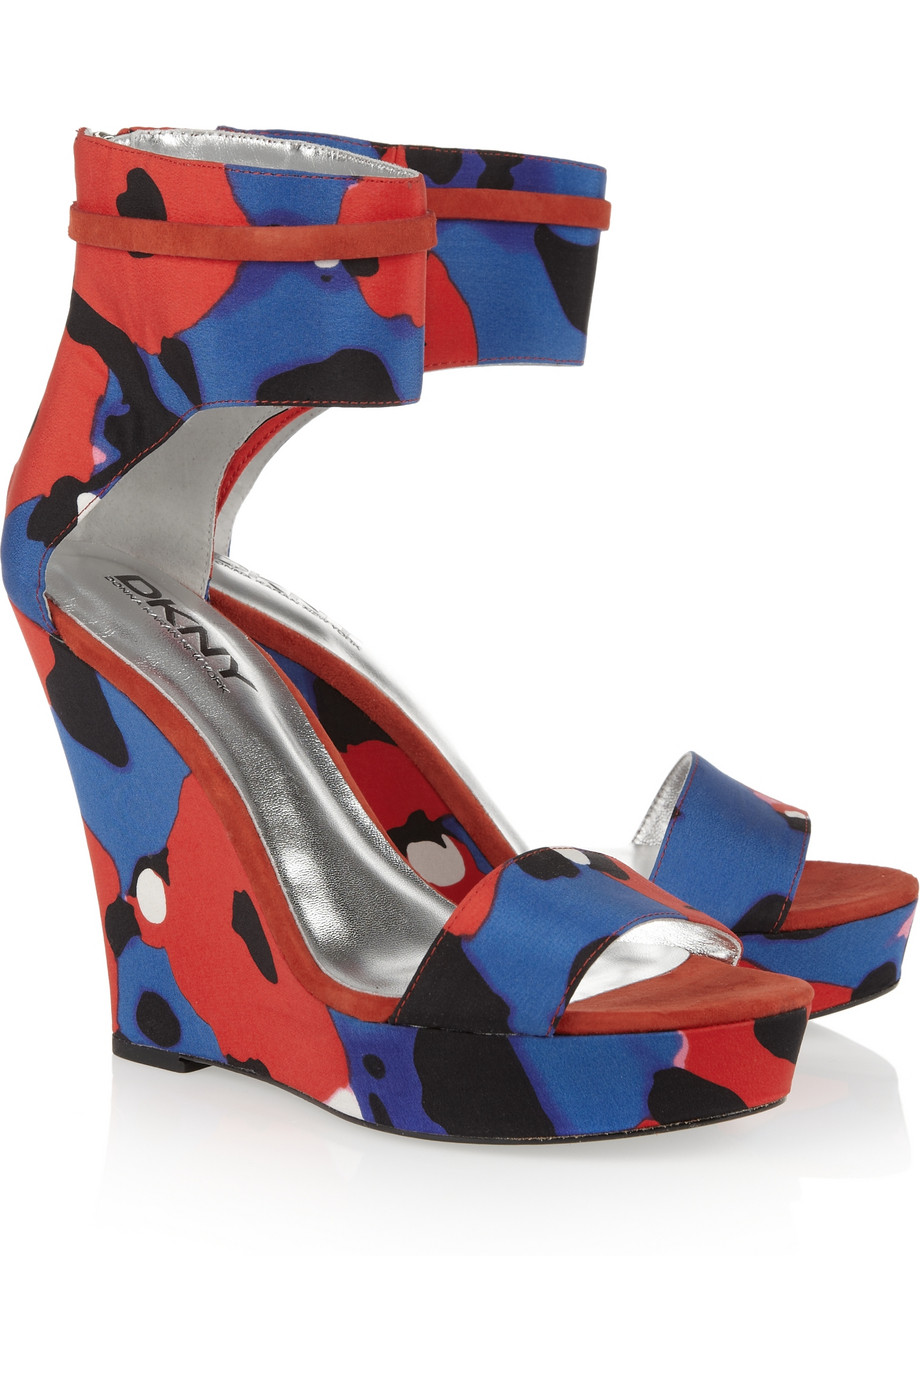 Blue And Red Heels